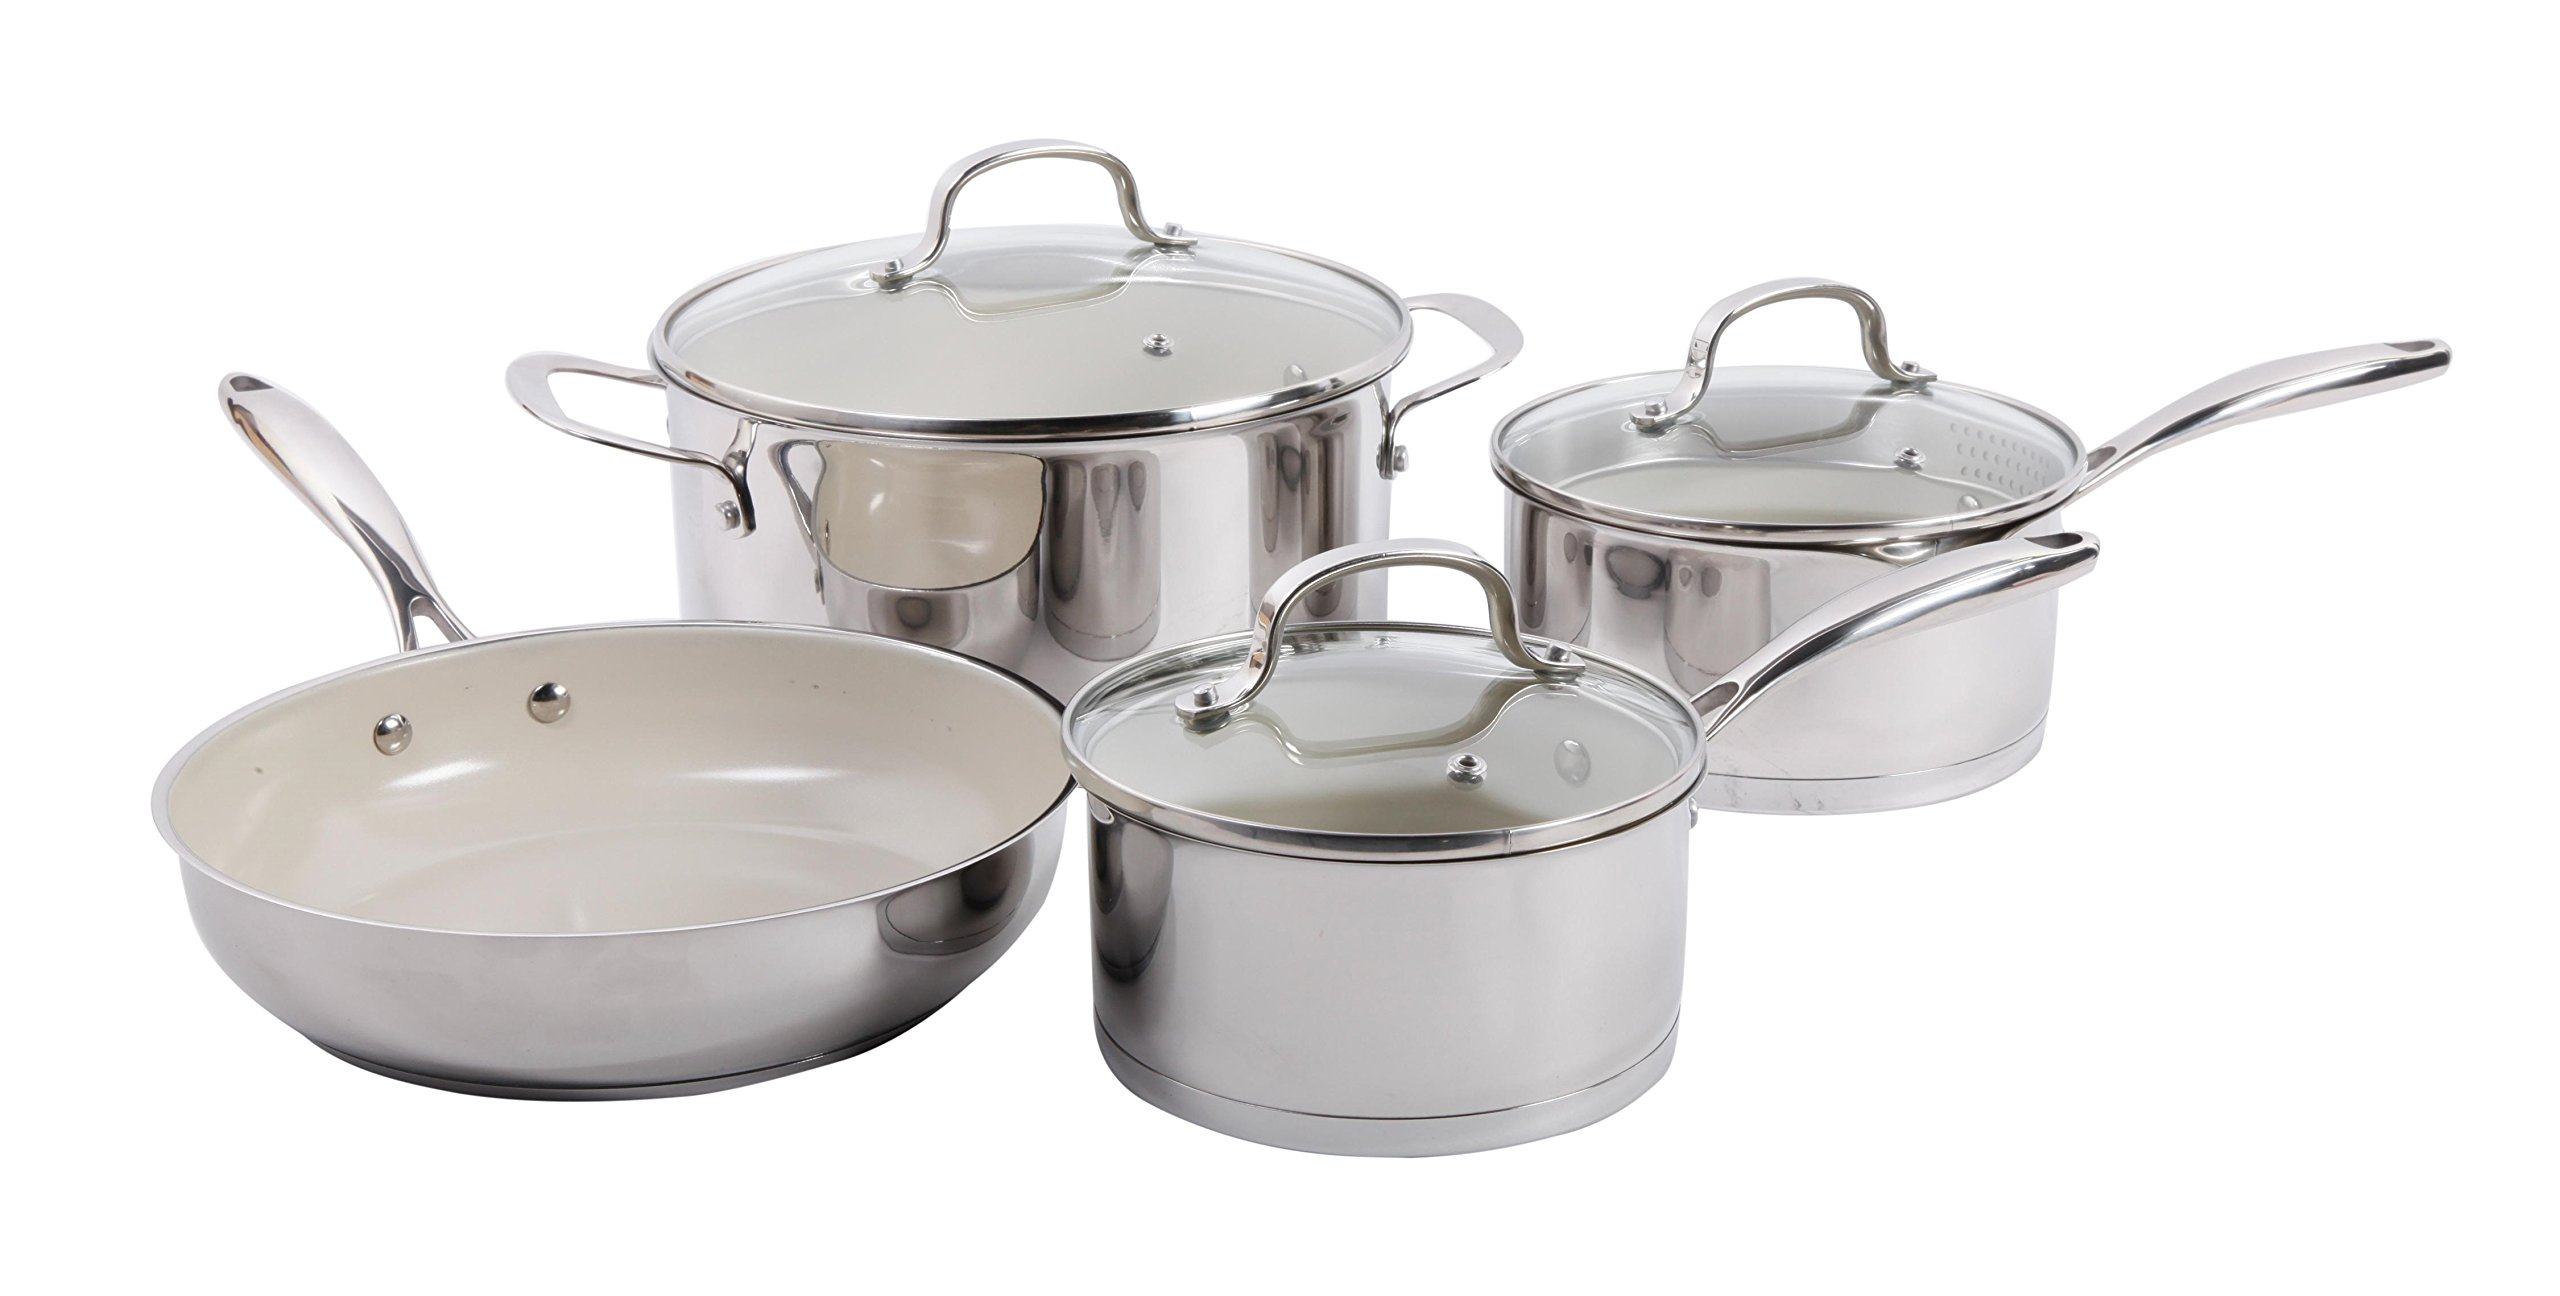 Gibson Cuisine 108181.07 Gleaming 7 Piece Cookware Set with Ceramic Nonstick Interior, Stainless Steel